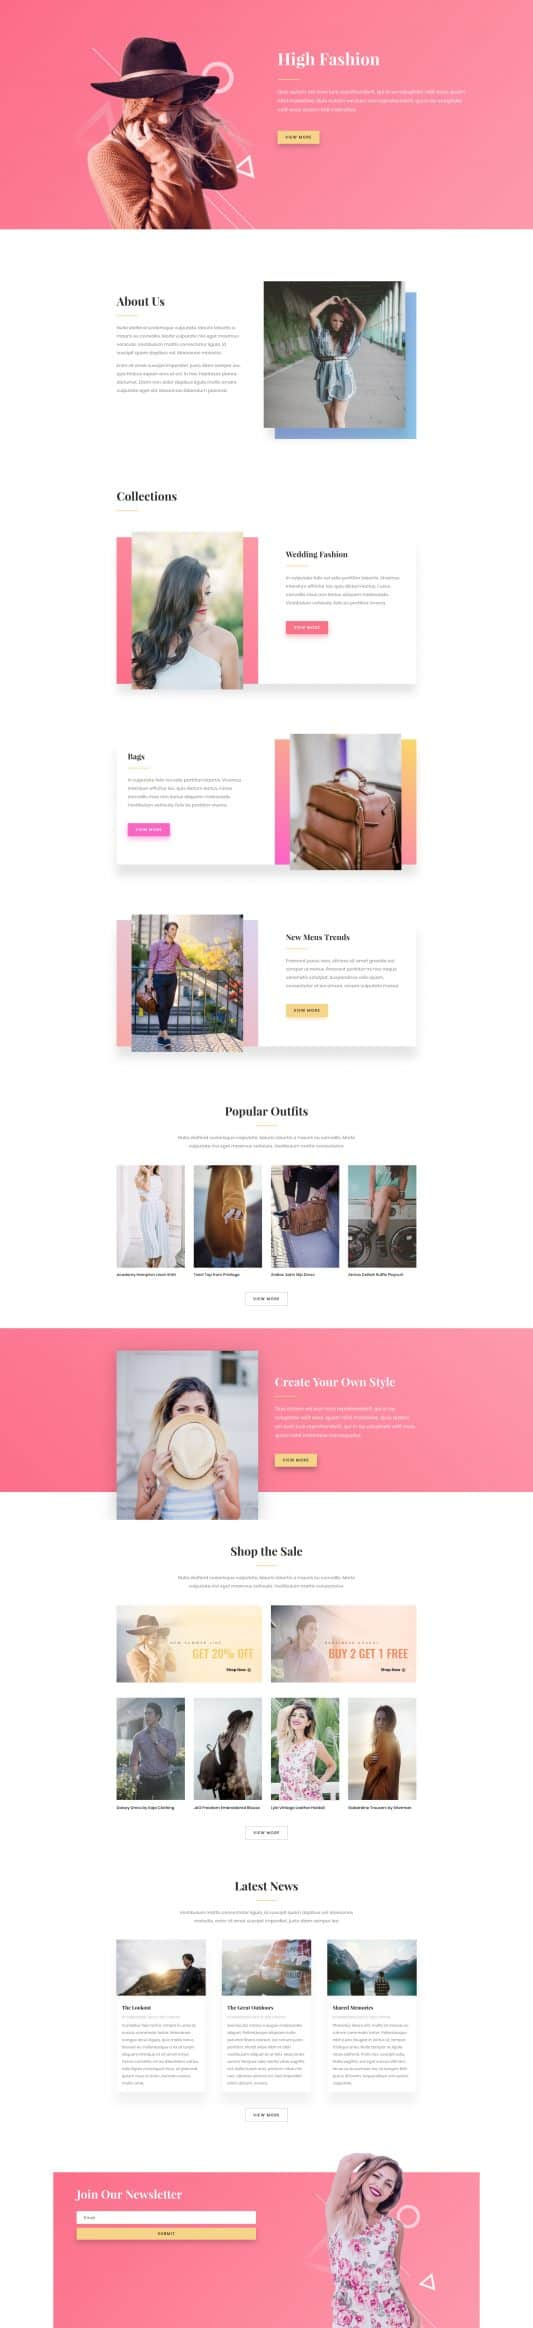 The Fashion Page Style: Homepage Design 1